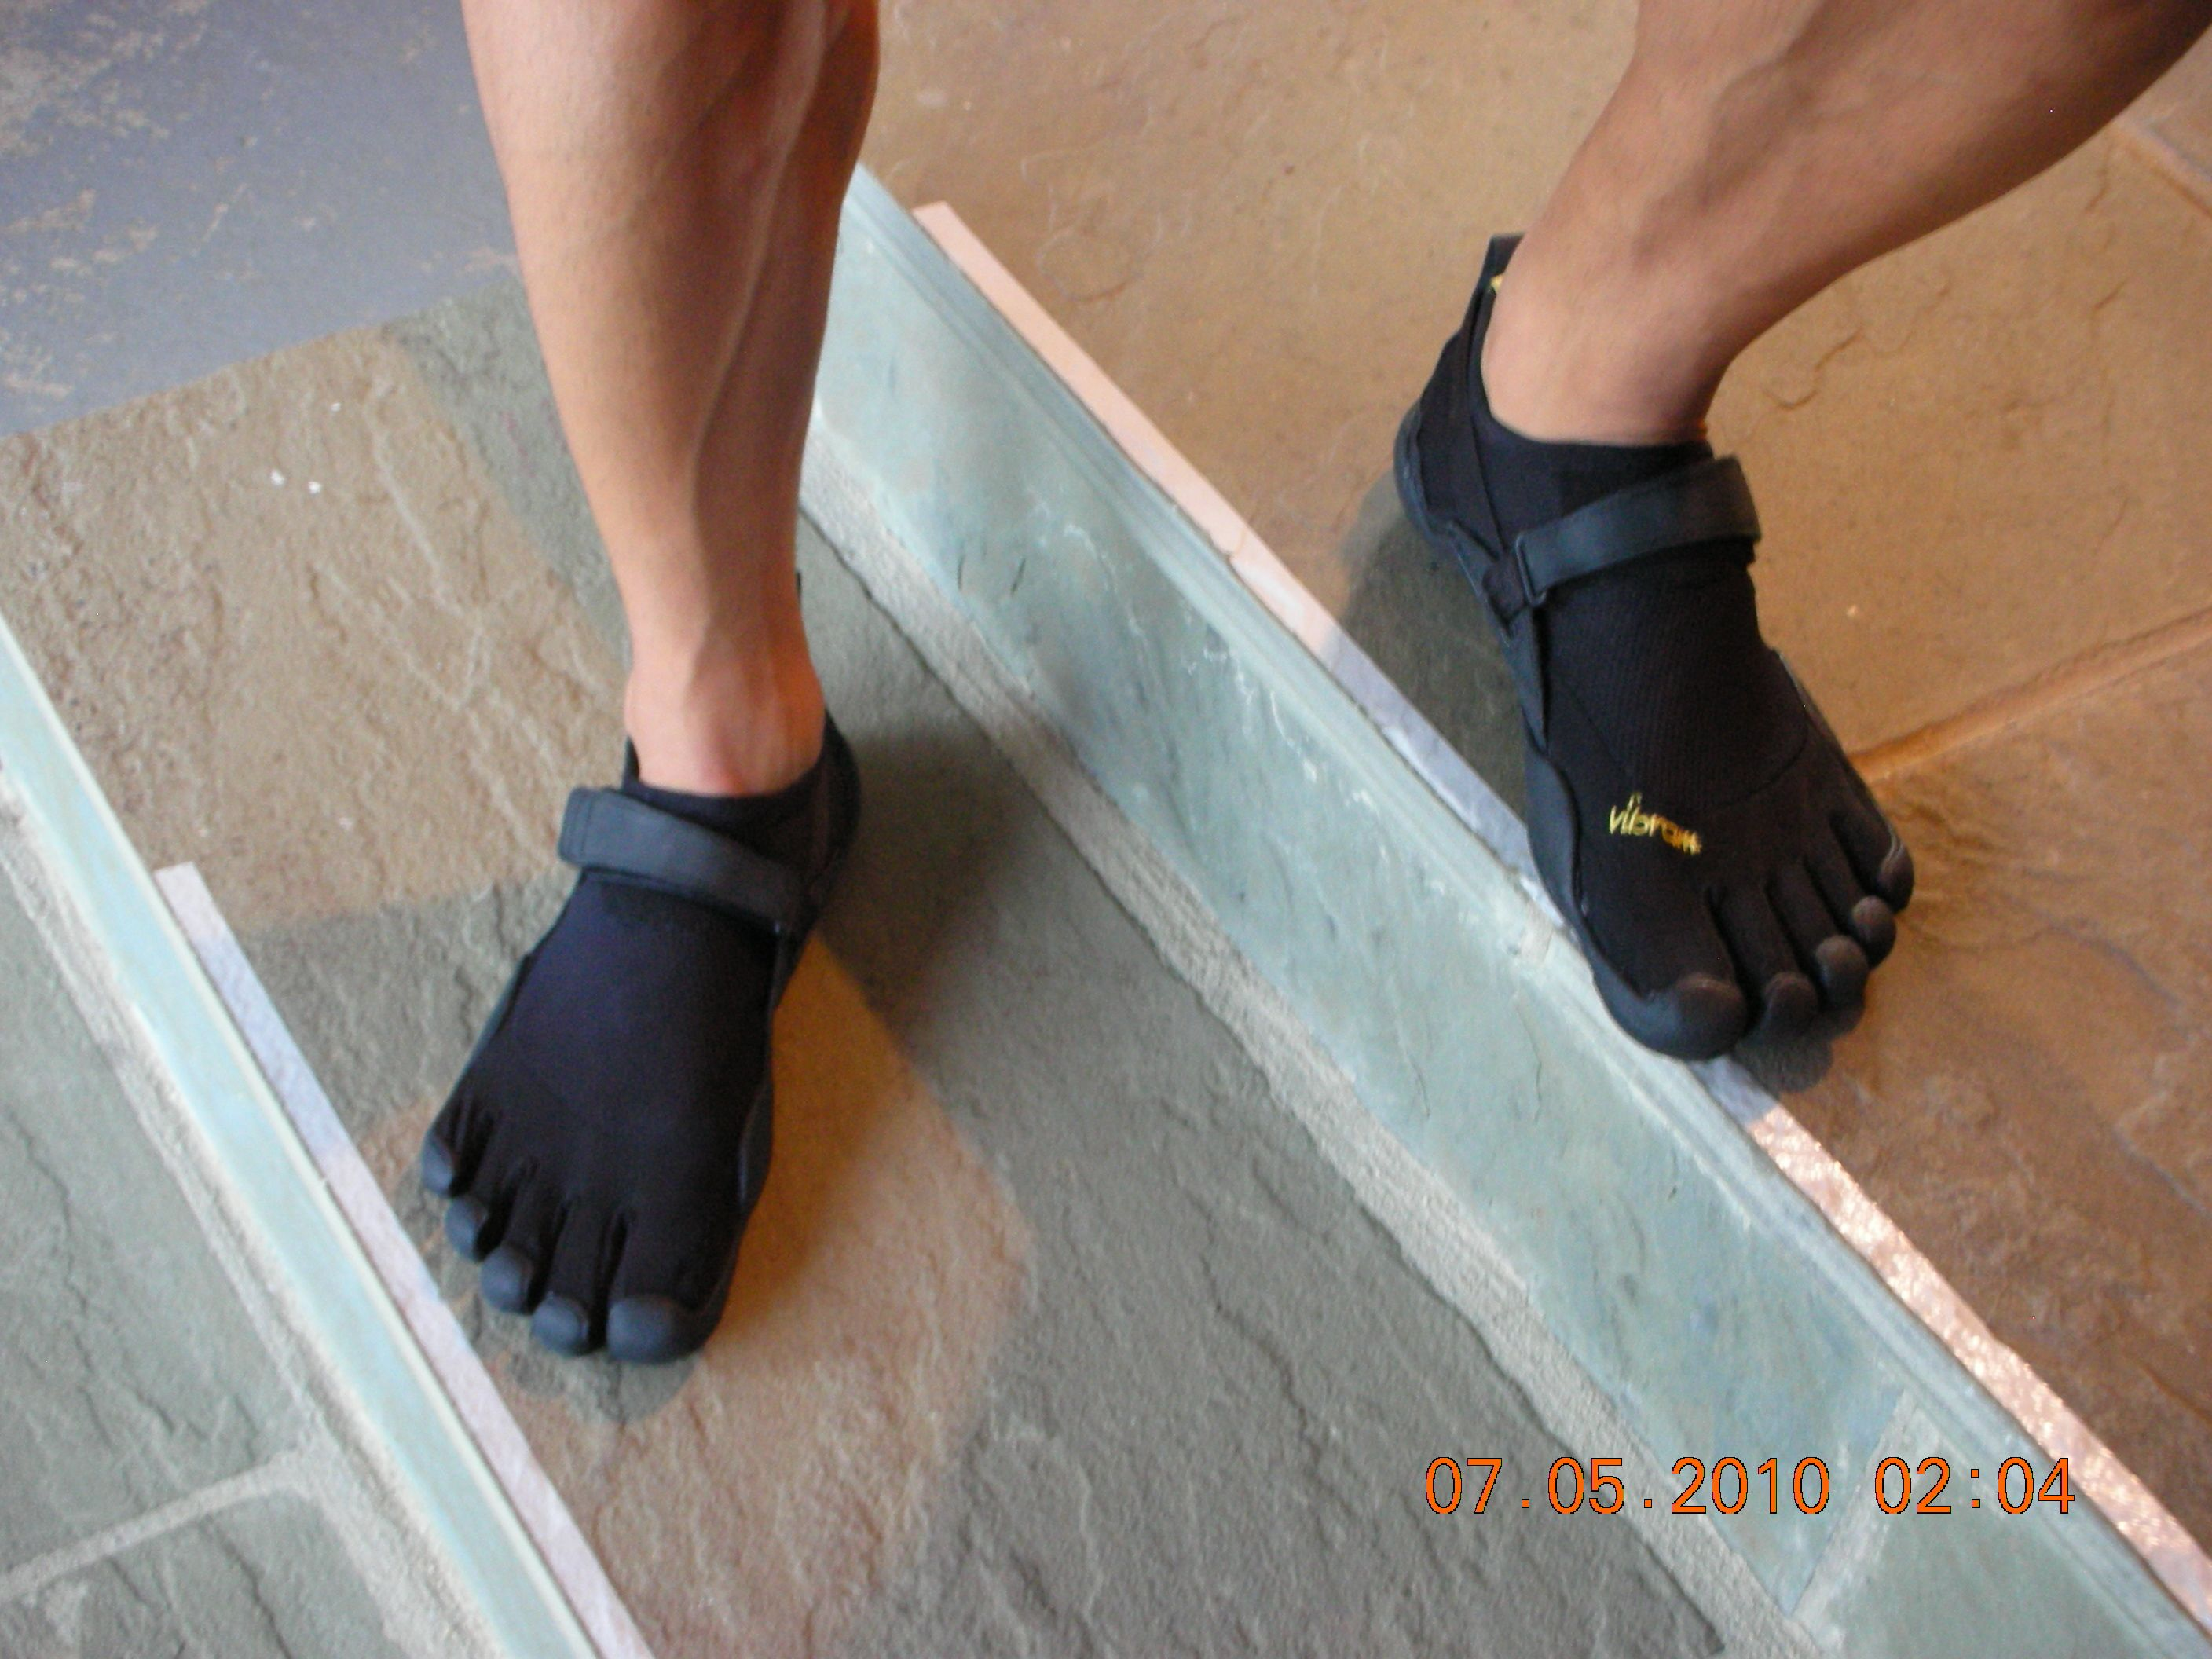 to run or not to run There is no evidence that minimalist running shoes (ie vibram five fingers or  brooks) help prevent injuries more than normal running shoes.